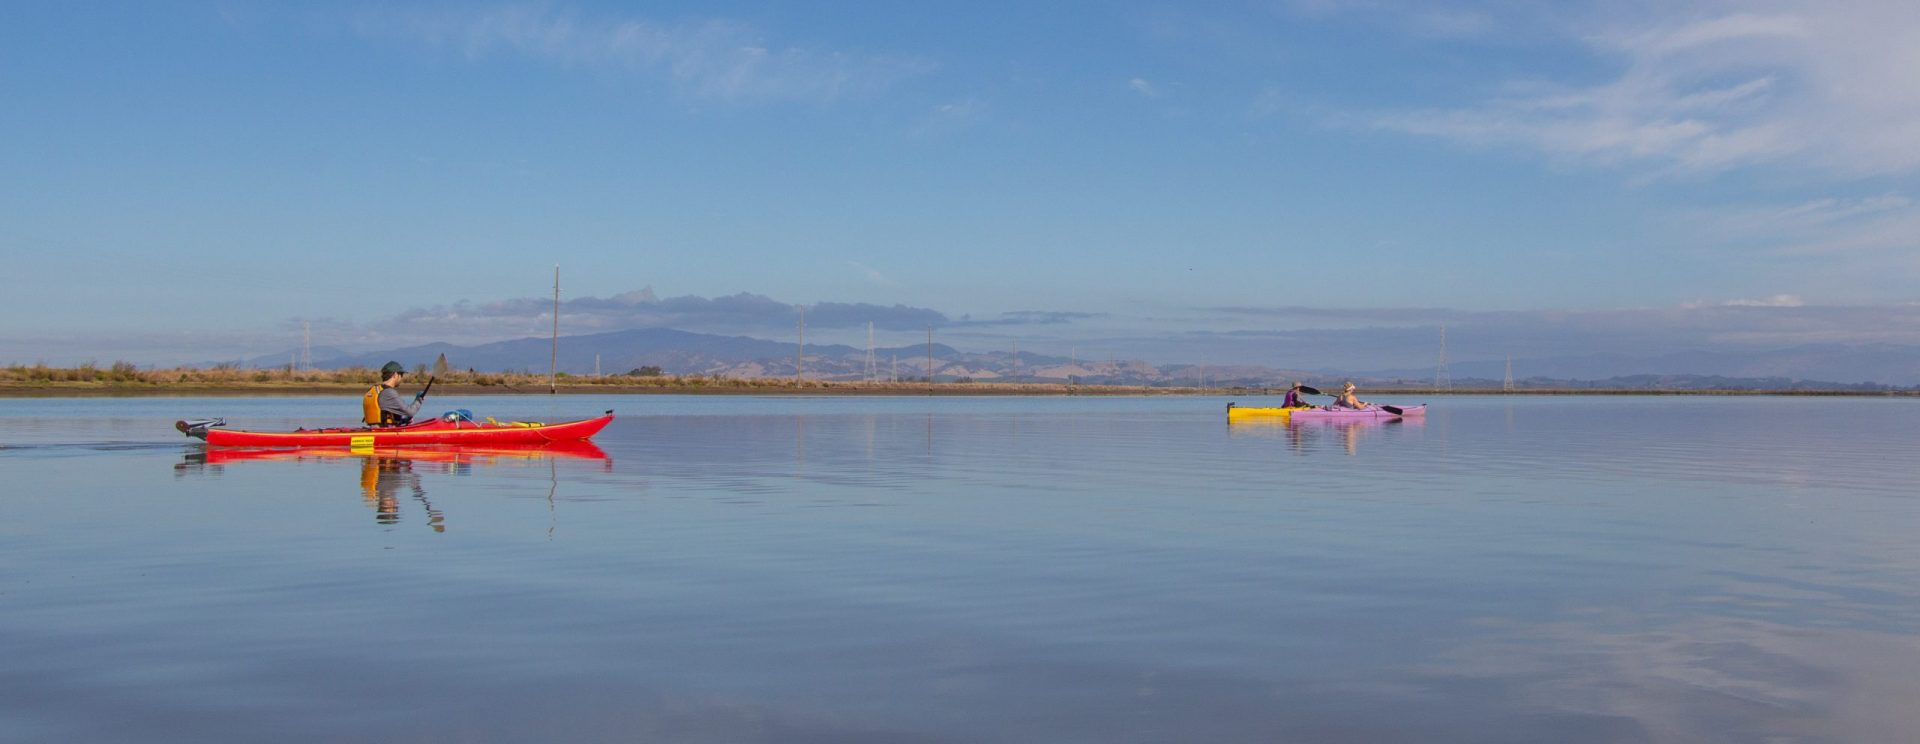 red, yellow, purple kayaks with paddlers headed out